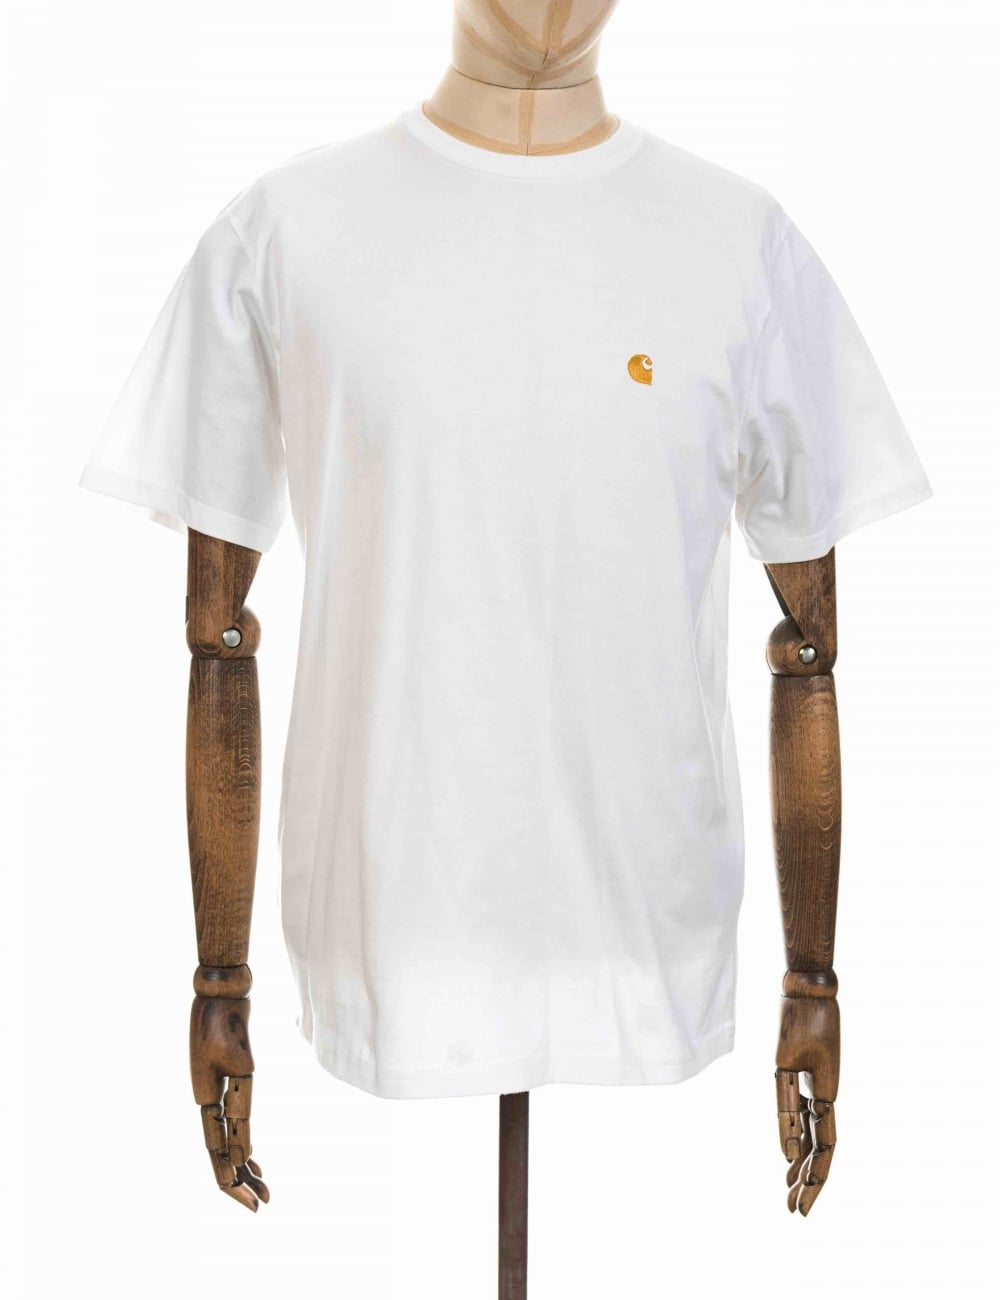 Carhartt chase t shirt white clothing from fat buddha for Carhartt tee shirts sale